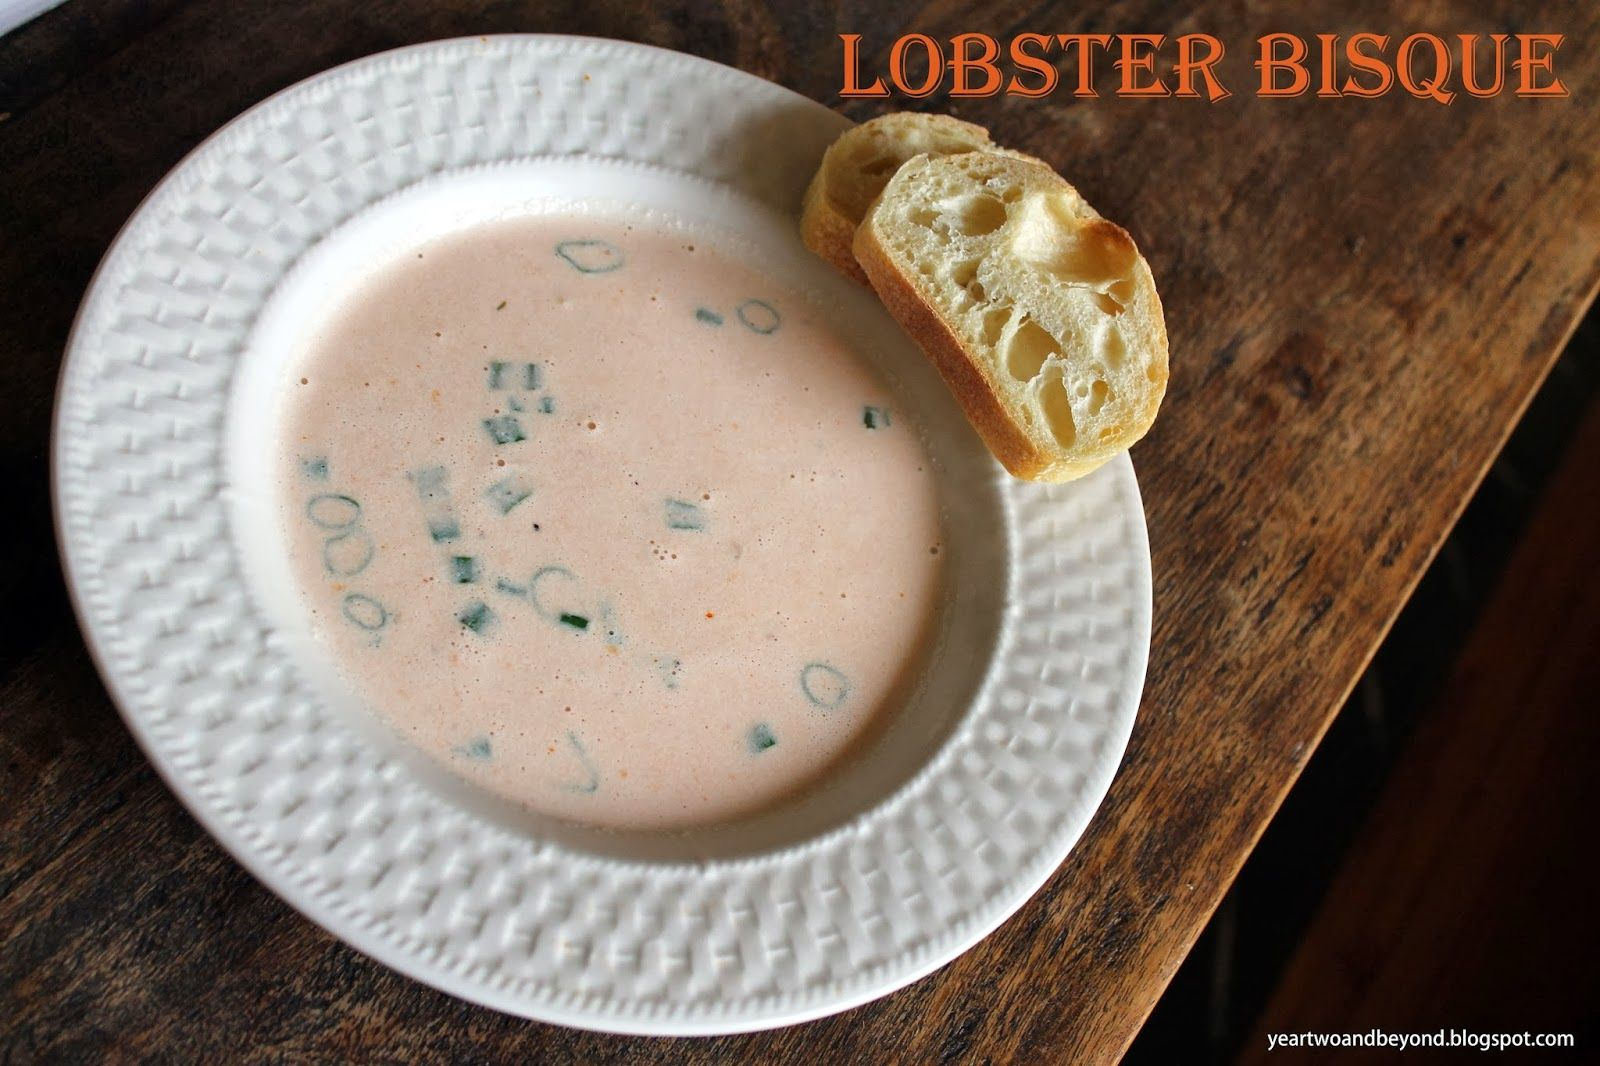 Lobster Bisque Recipe #soup #seafood #recipe yeartwoandbeyond.blogspot.com